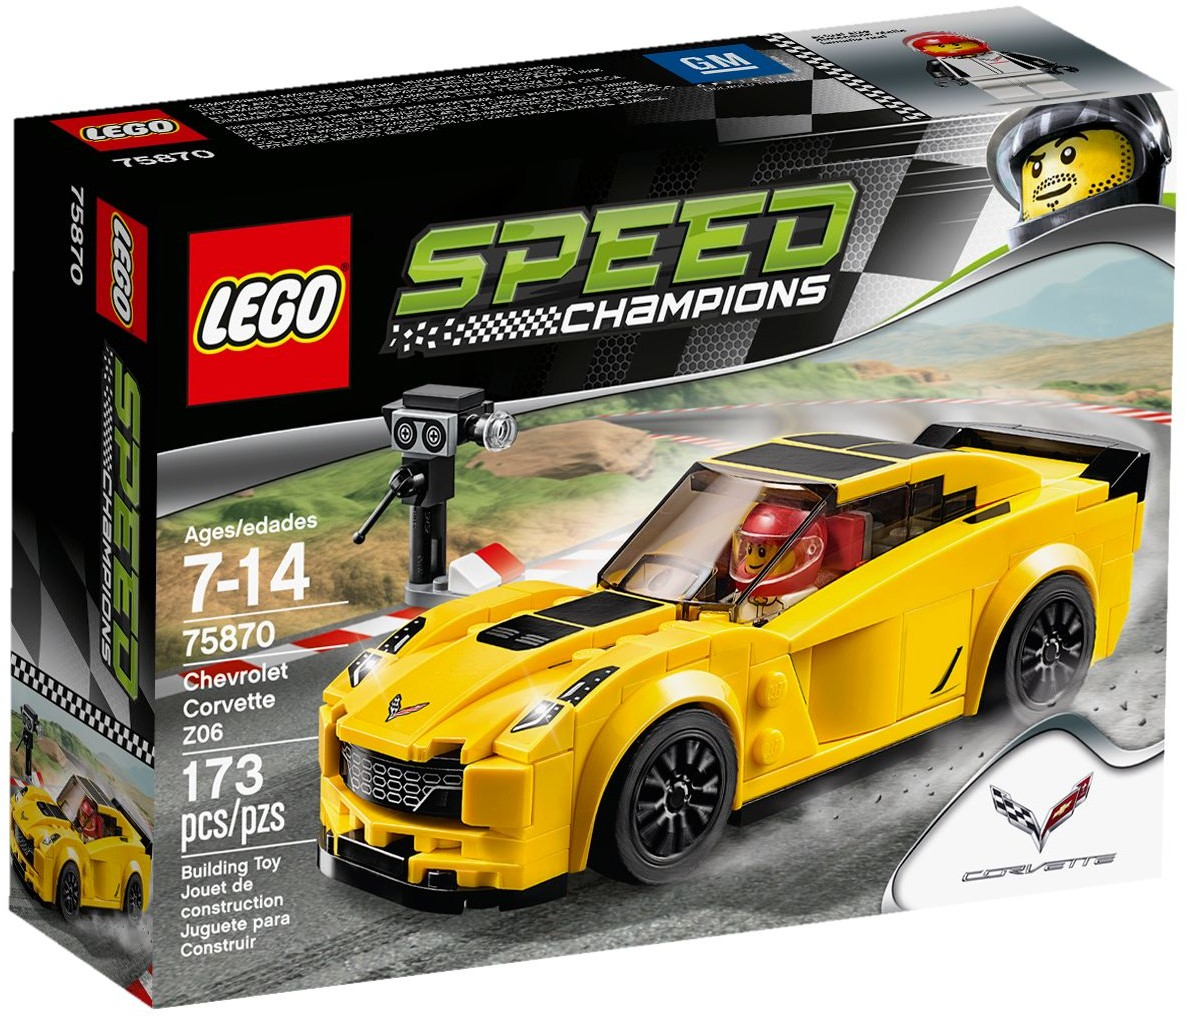 LEGO 75870 - Speed Champions - Chevrolet Corvette Z06